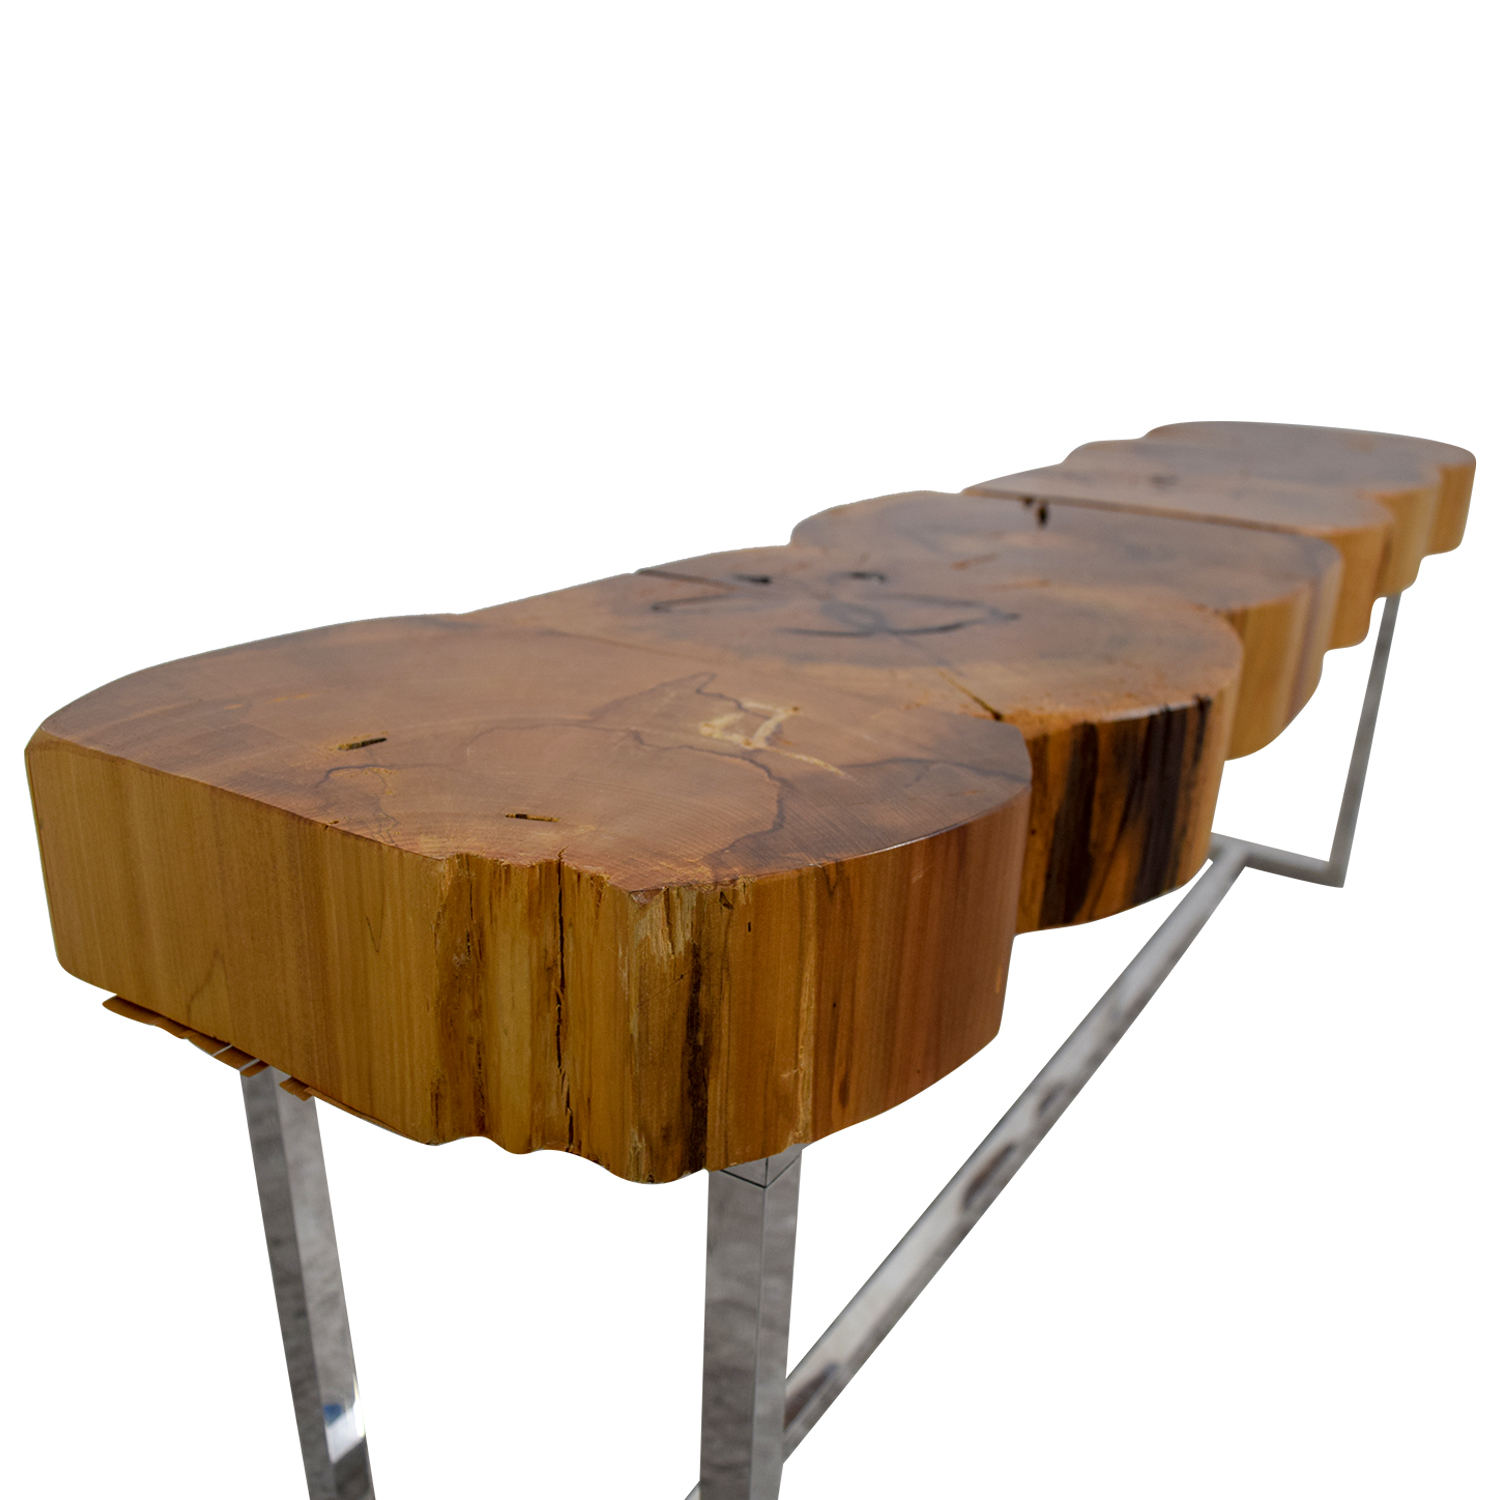 79% OFF - Custom Cut Natural Wood Coffee Table / Tables